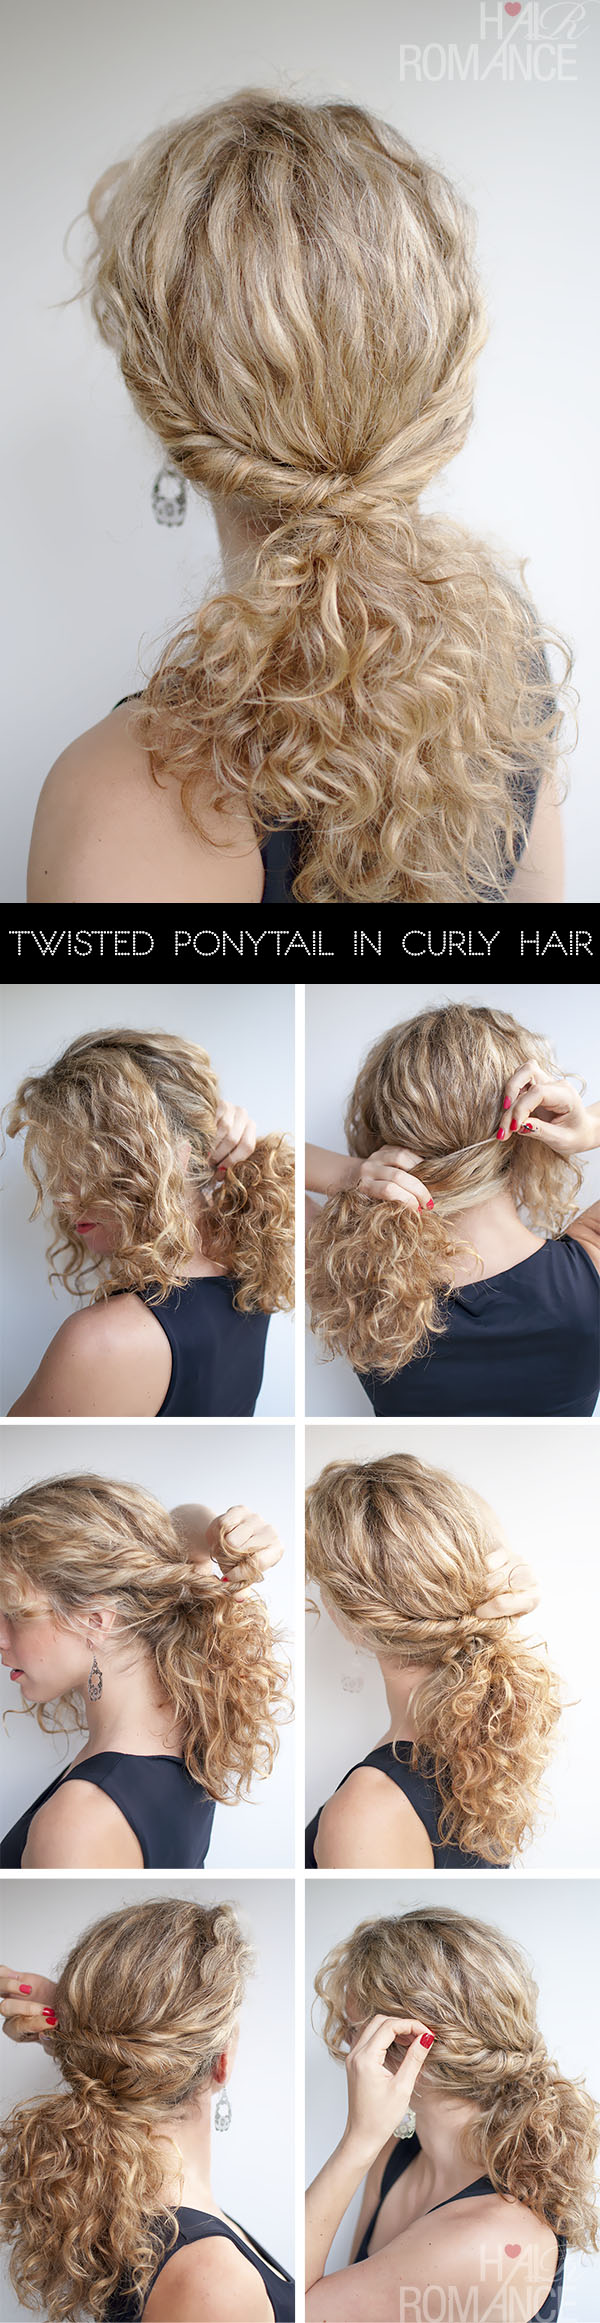 Hair Romance - Twisted Ponytail Hair Tutorial in curly hair